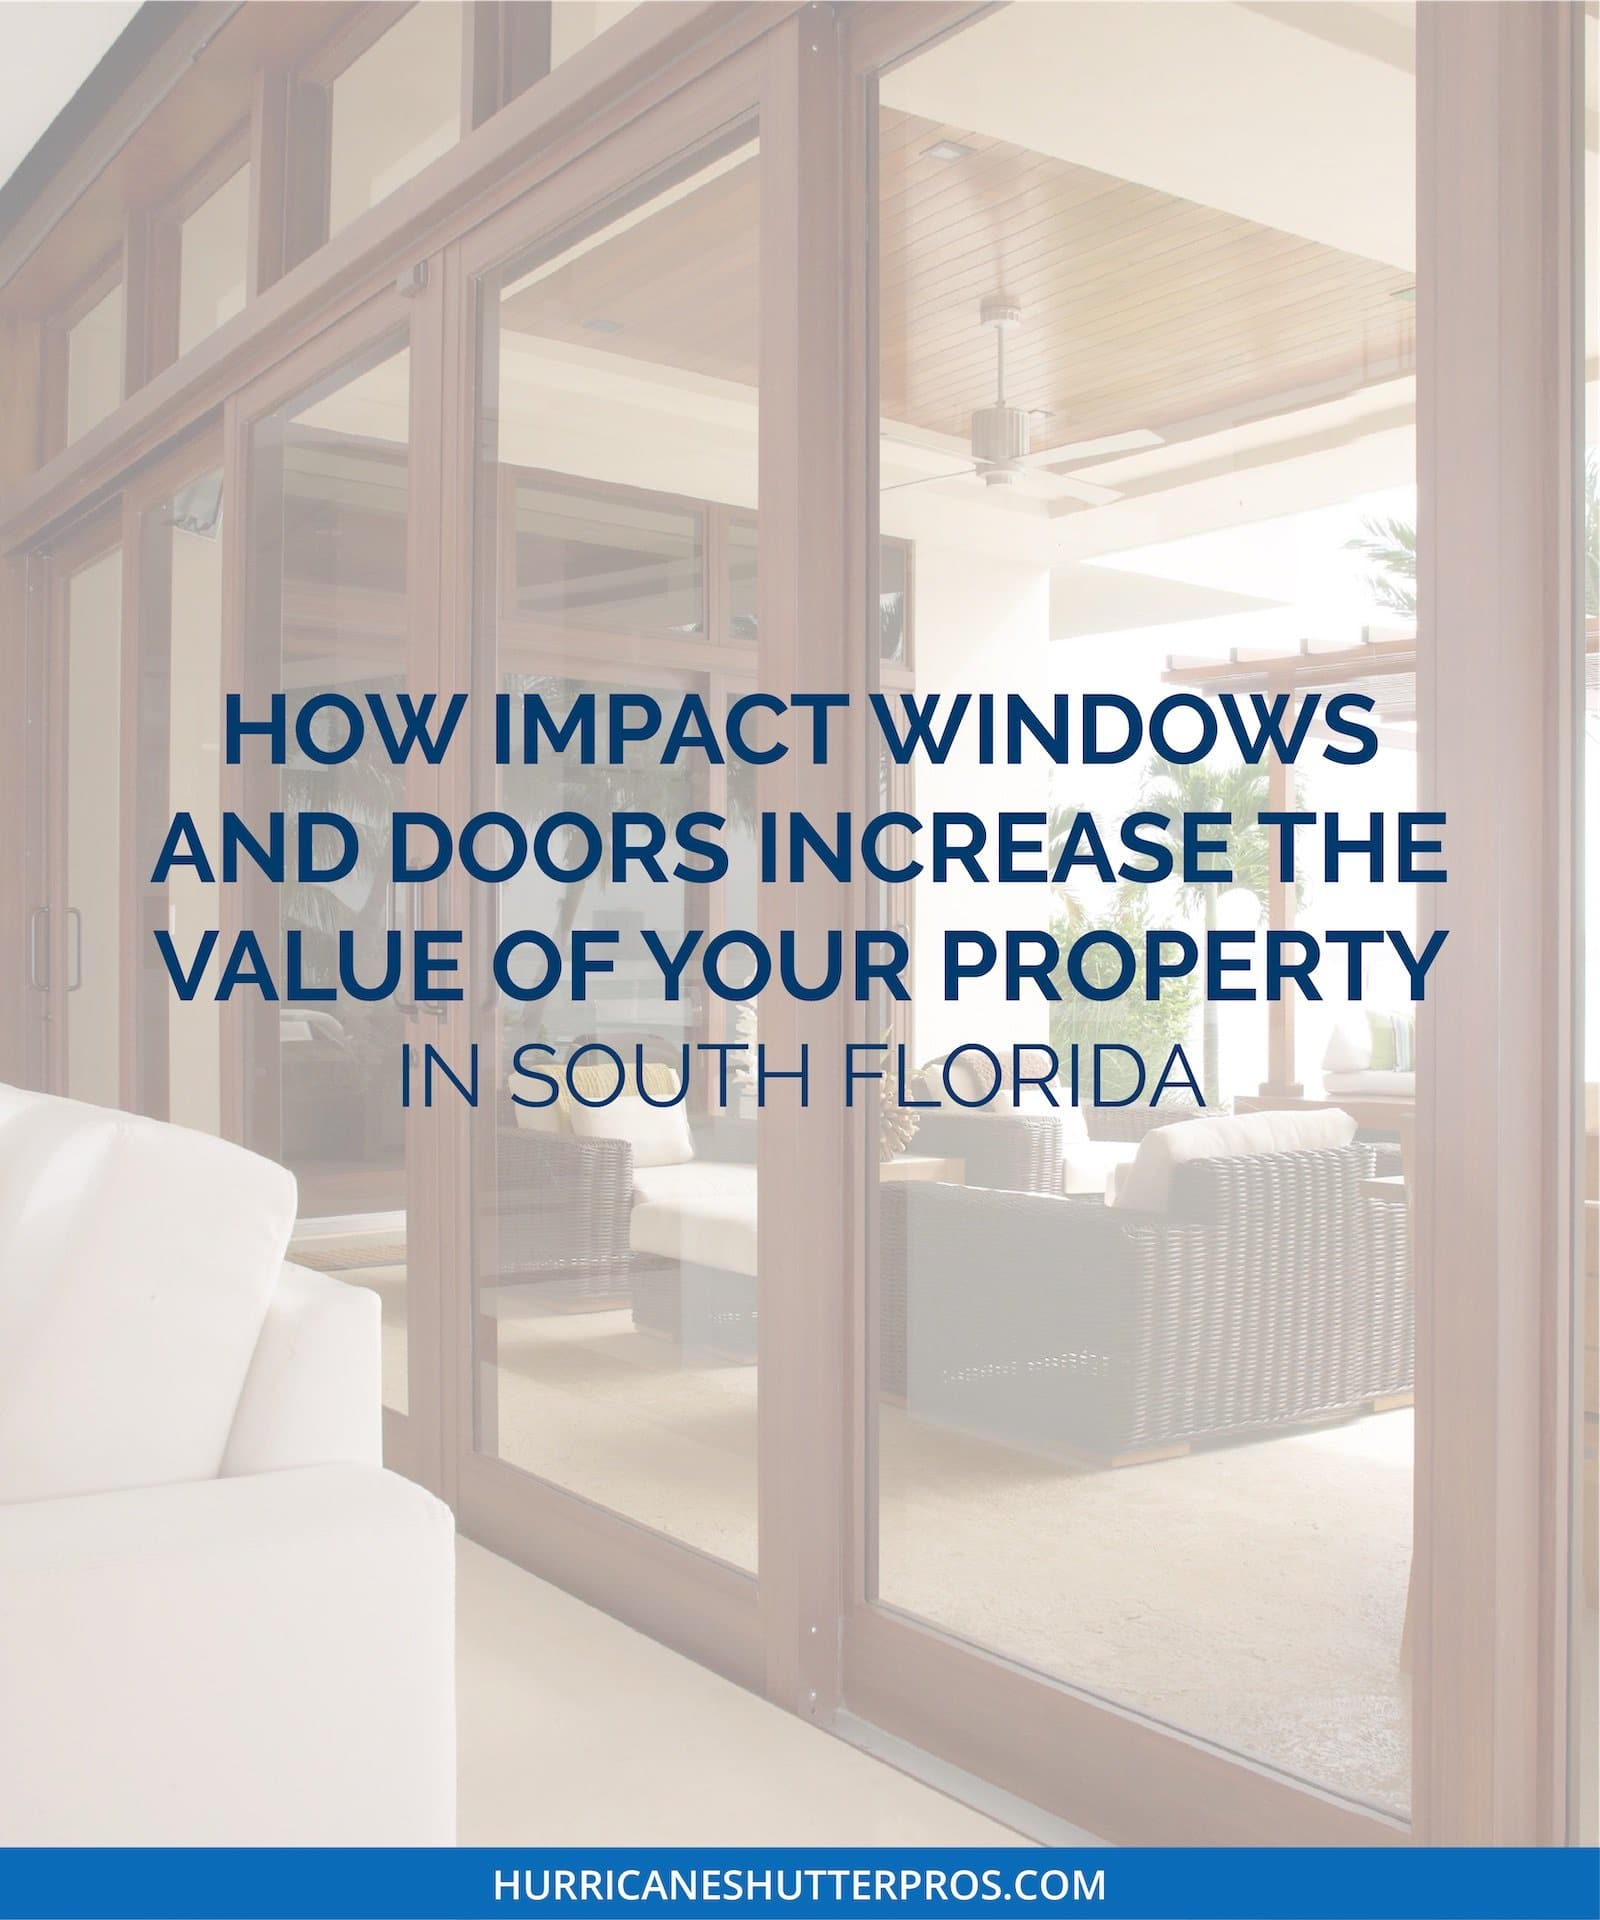 How Impact Windows and Doors Increase the Value of Your Property in South Florida